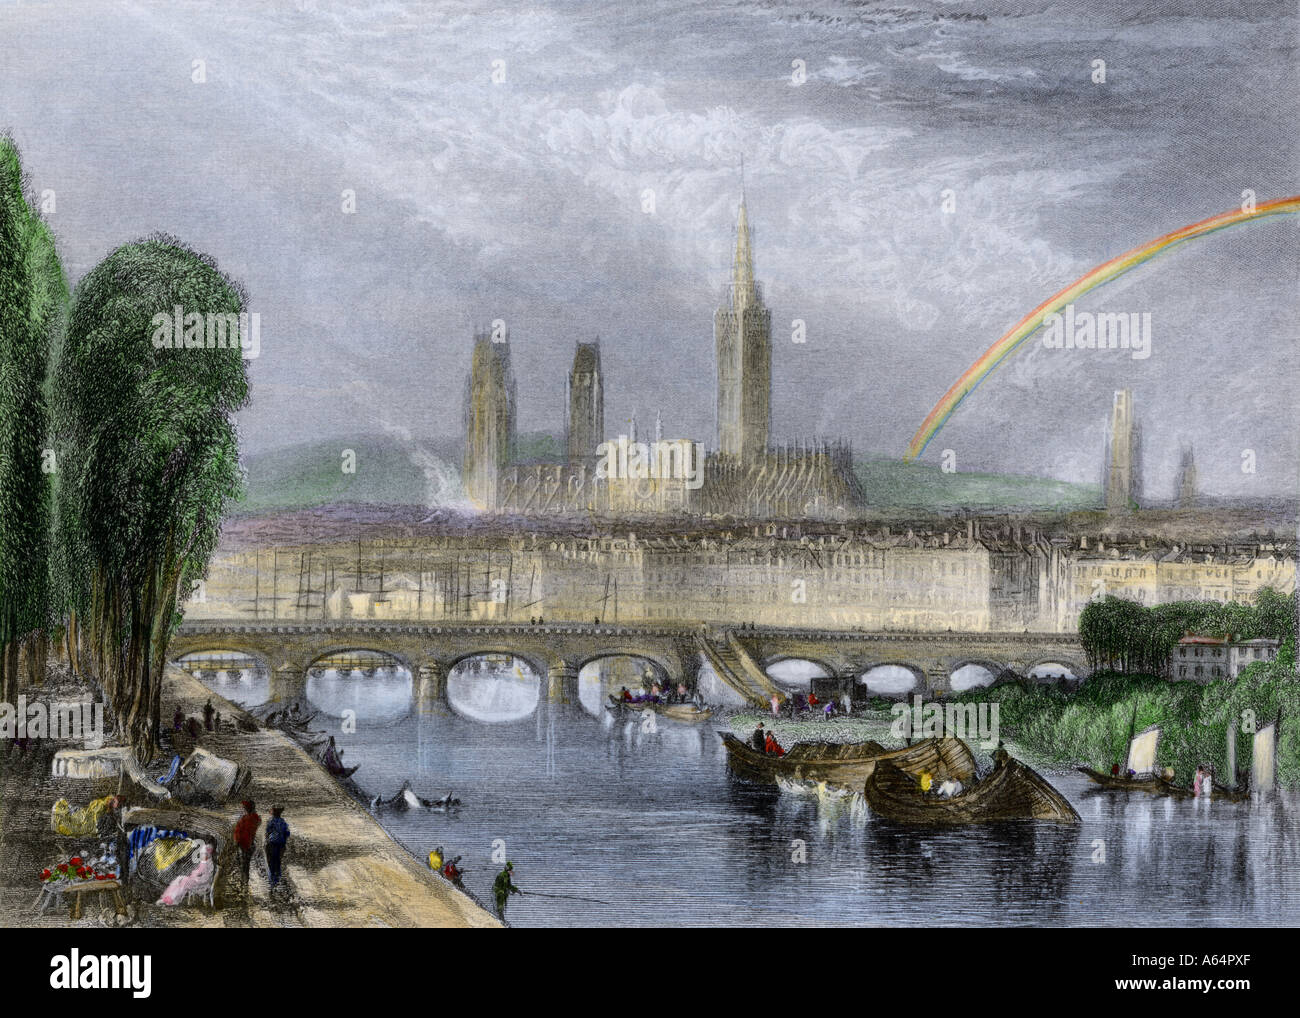 Rouen France on the River Seine early 1800s. Hand-colored engraving - Stock Image